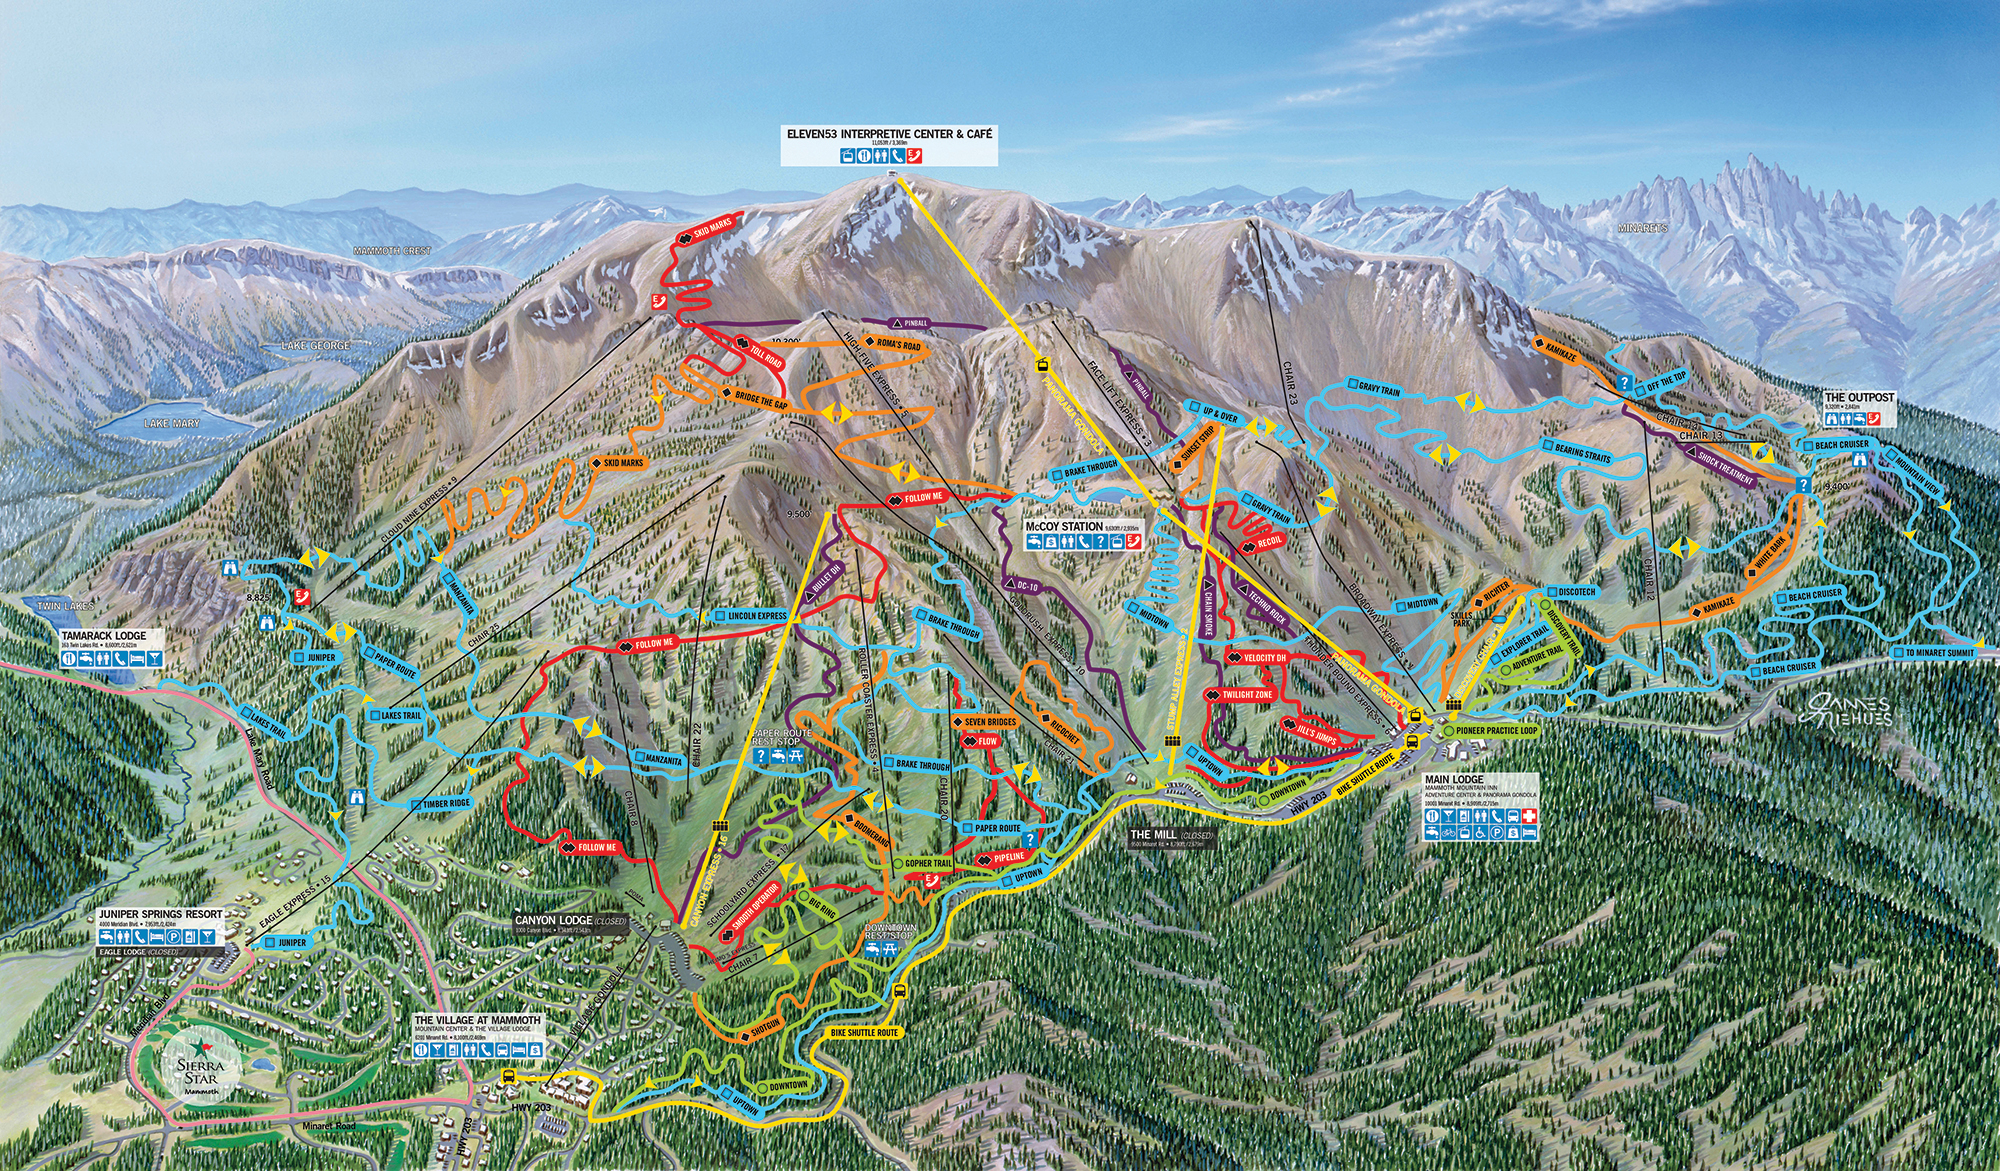 Mammoth Mountain Becomes First US Resort to Allow Electric ... on southern california ski resorts map, tahoe ski resorts map, mammoth ski area map, mammoth hot springs map, mammoth condo map, mt. shasta ski map, mammoth city map, mammoth ca map, mammoth fishing map, snowcreek resort map, mammoth ski trail map, mammoth illinois map, vermont ski resorts map, mammoth lodging map, mammoth lodge map, vail ski trail map, mammoth mtn map, mammoth on a map, ski colorado map, mammoth mountain map,